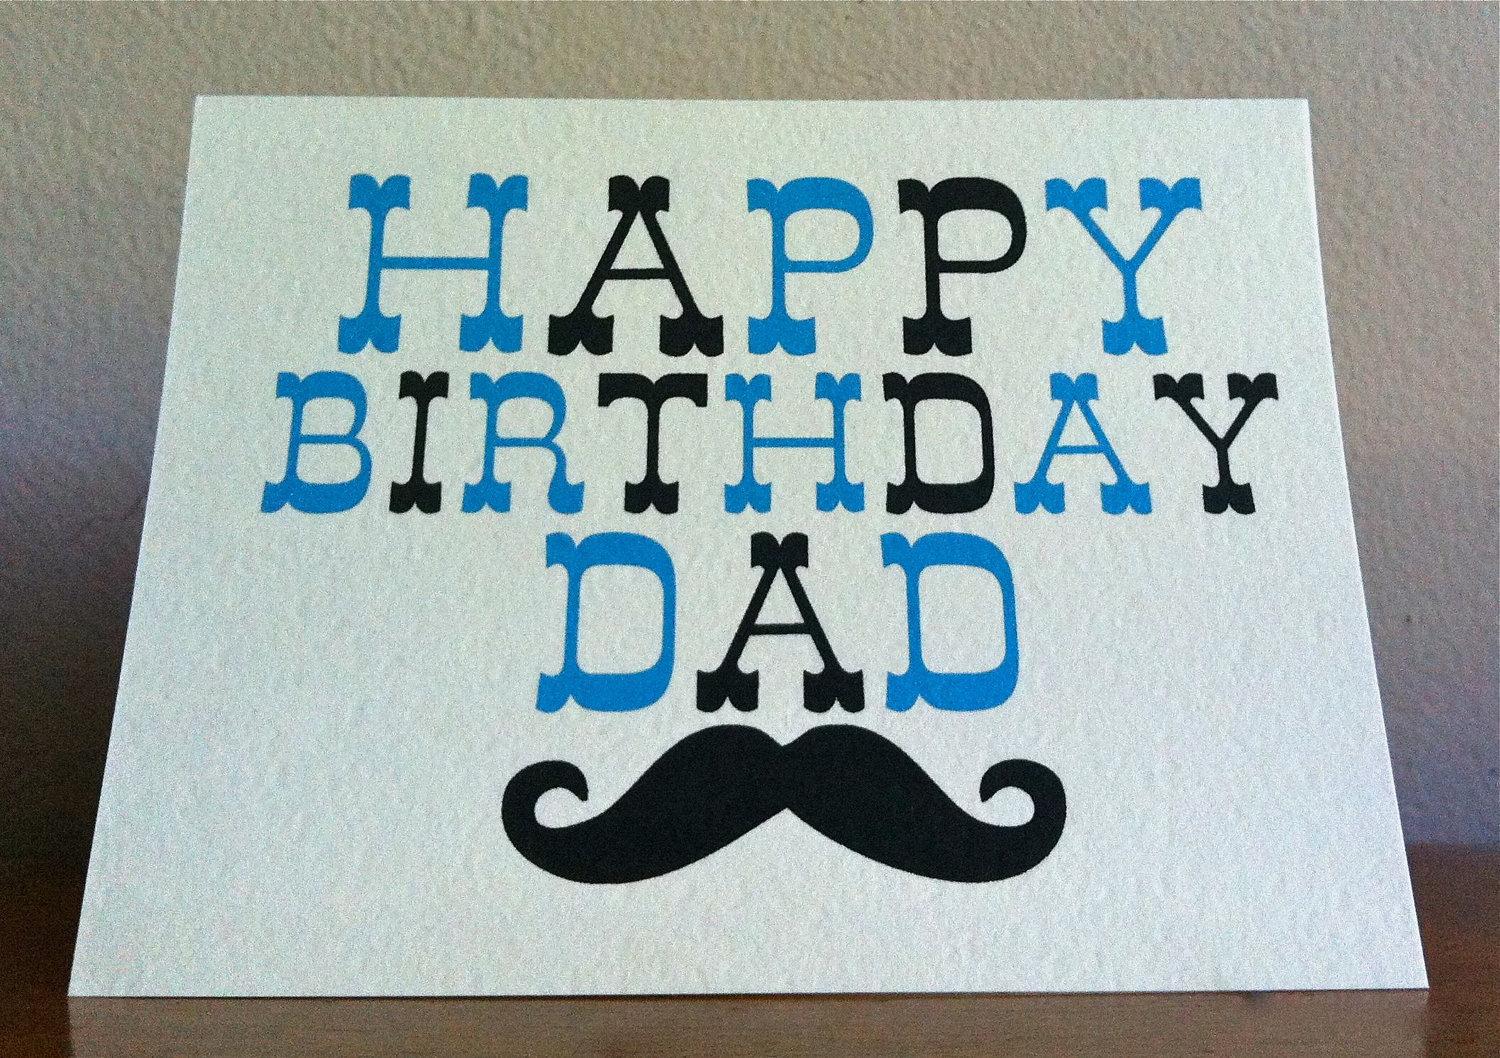 Happy Birthday Dad Card creative baby shower invites software to – Birthday Cards for Dad